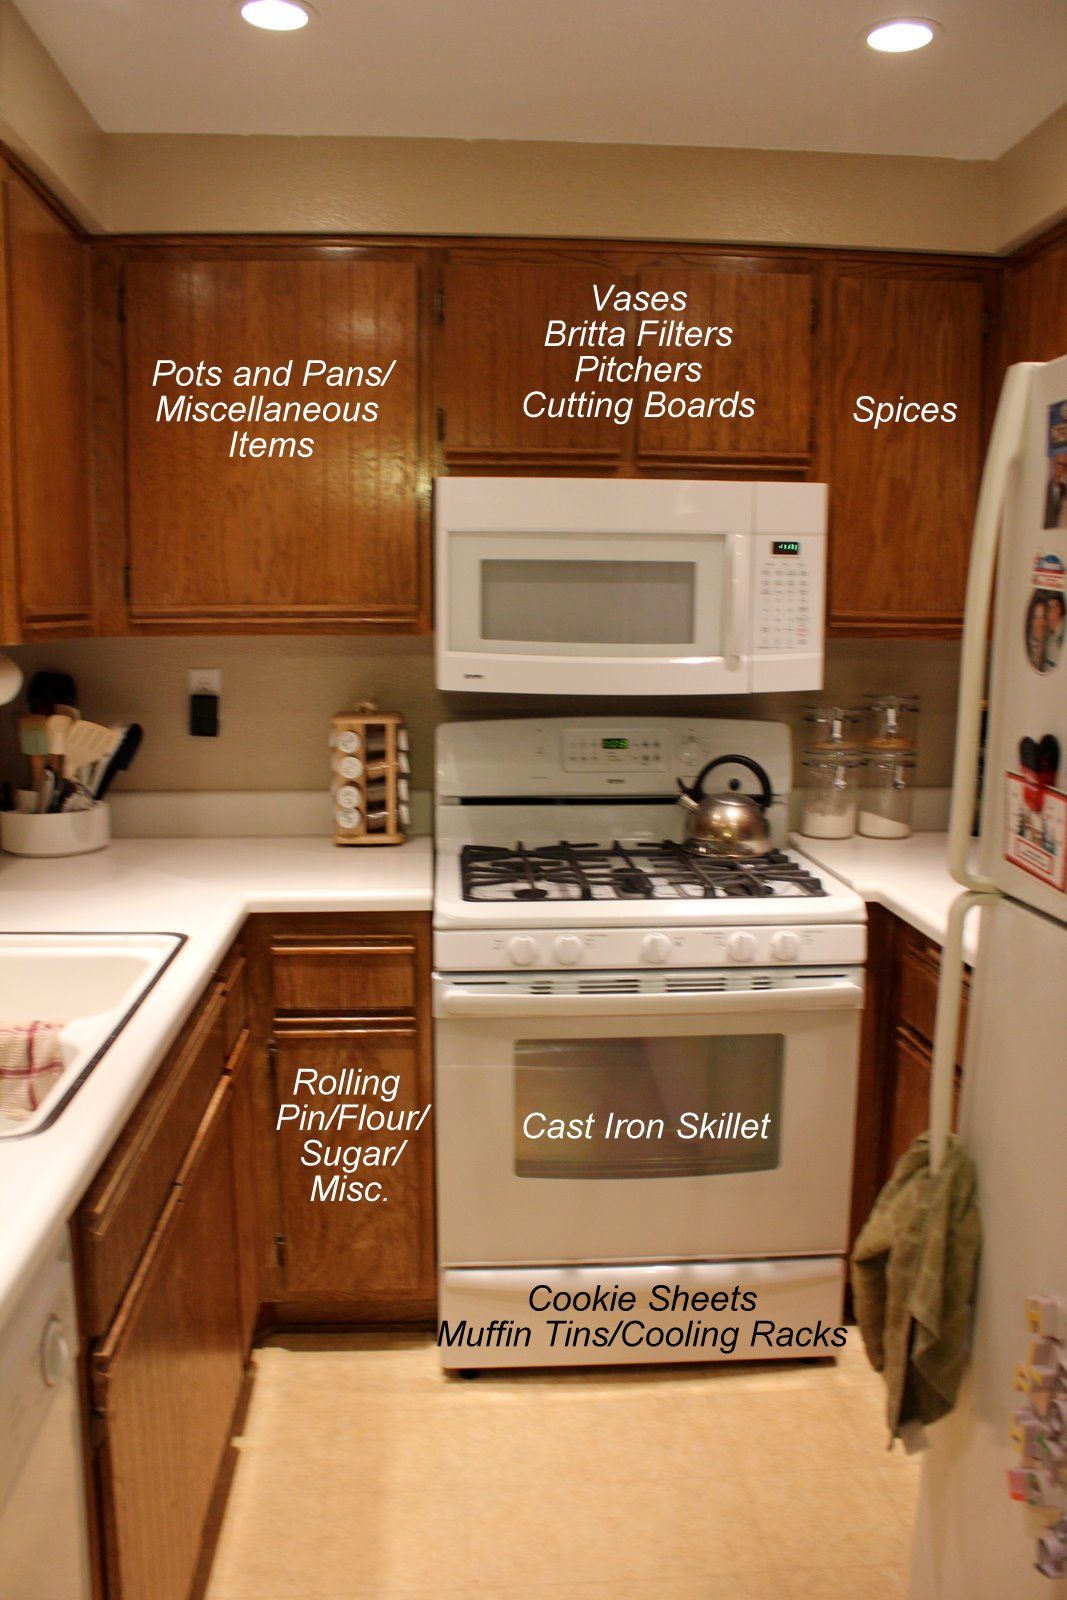 Near To Nothing Small Kitchen Organization - Where to put things in kitchen cabinets